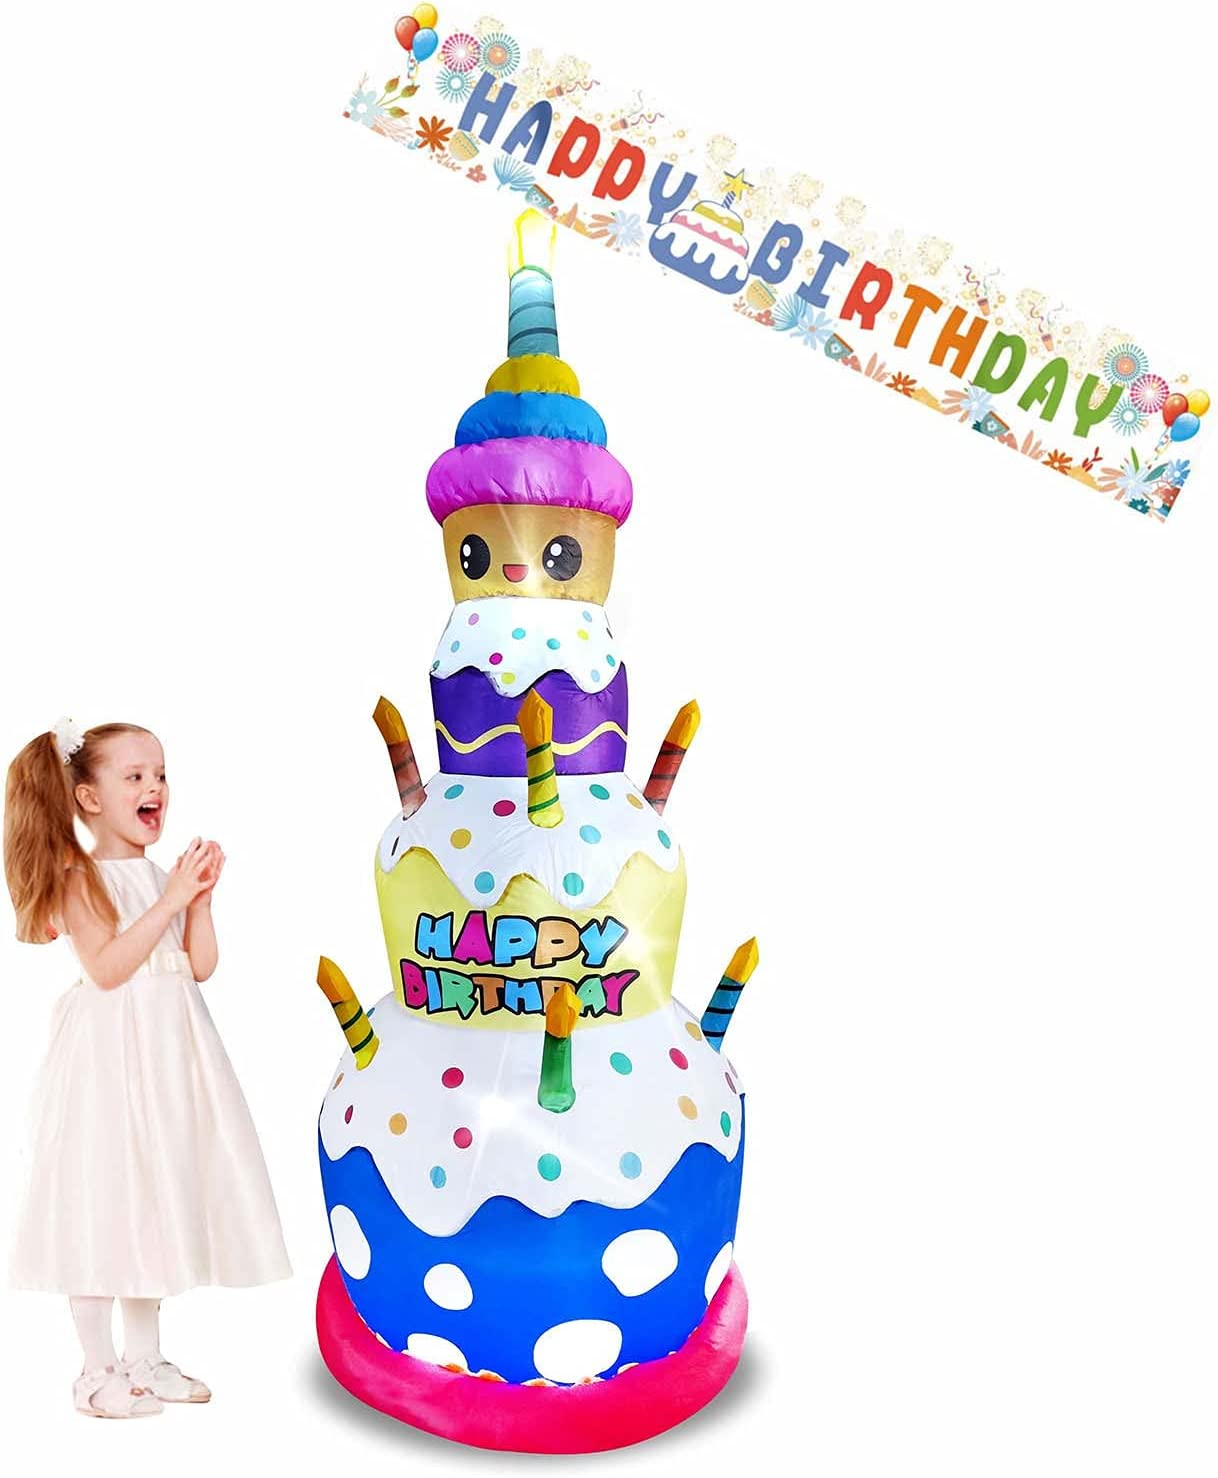 Emalie 7 Foot Tall Inflatable Candles Birthday Happy 新作 人気 出色 with Cake